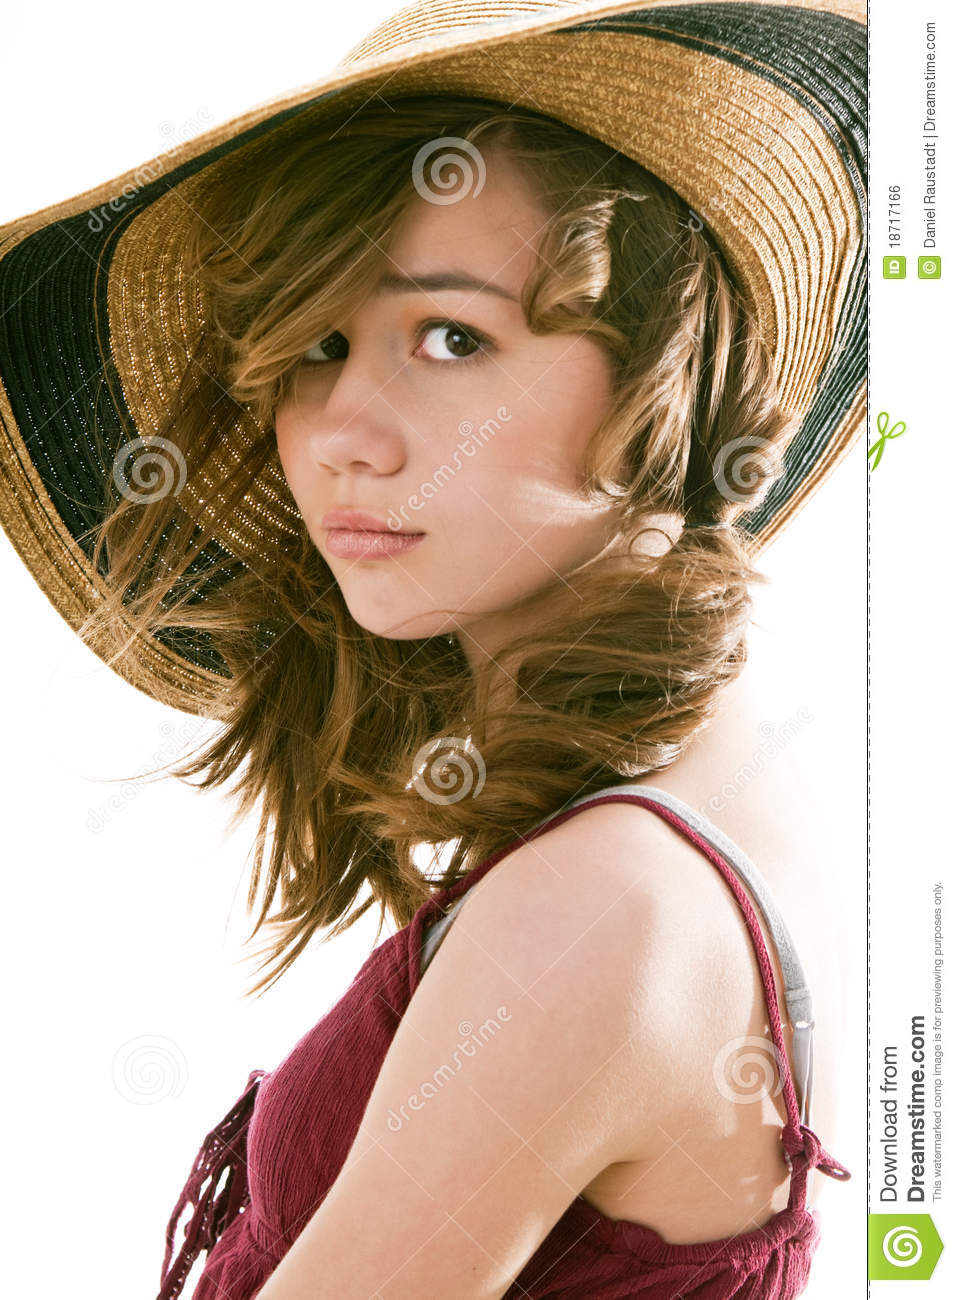 Attractive Preteen Female Model Royalty Free Stock Image